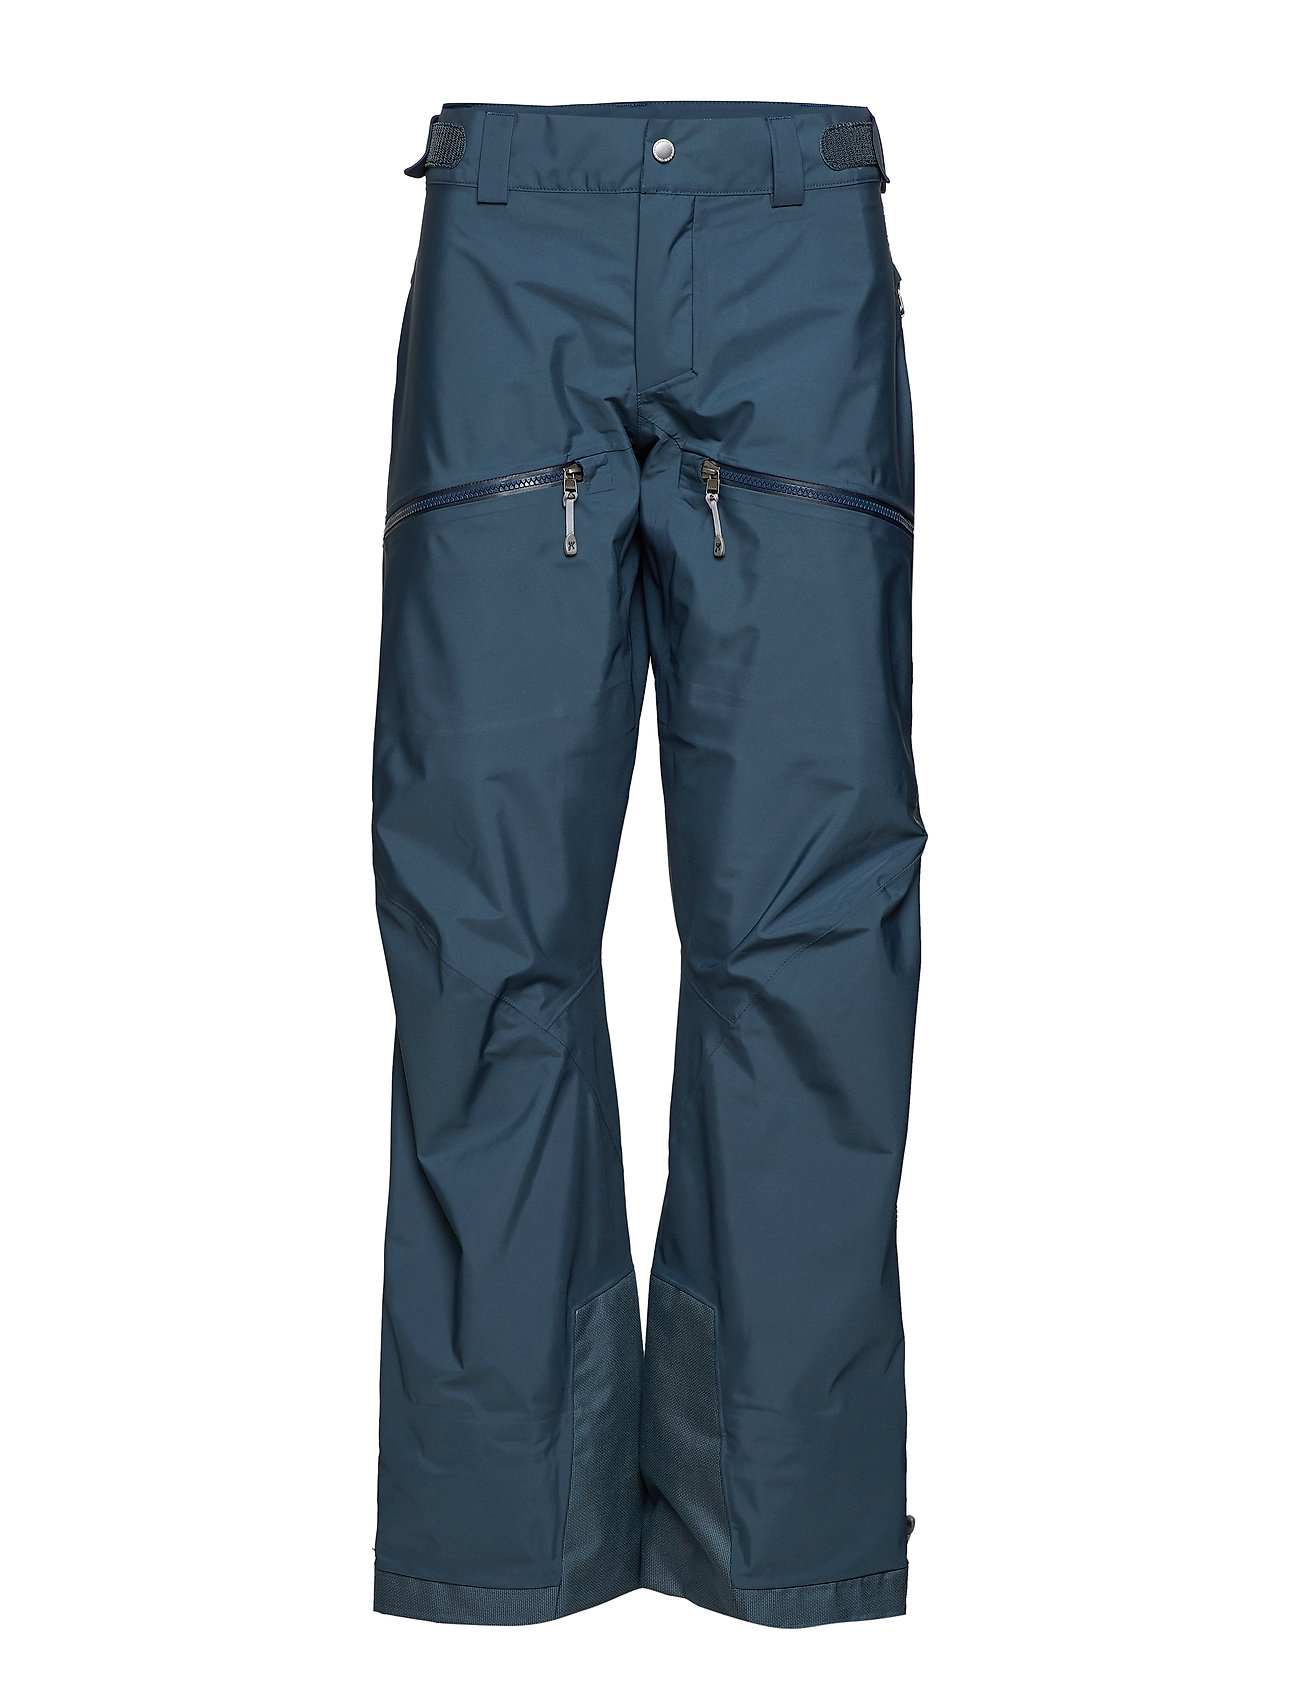 Houdini W's Purpose Pants - DARK DENIM